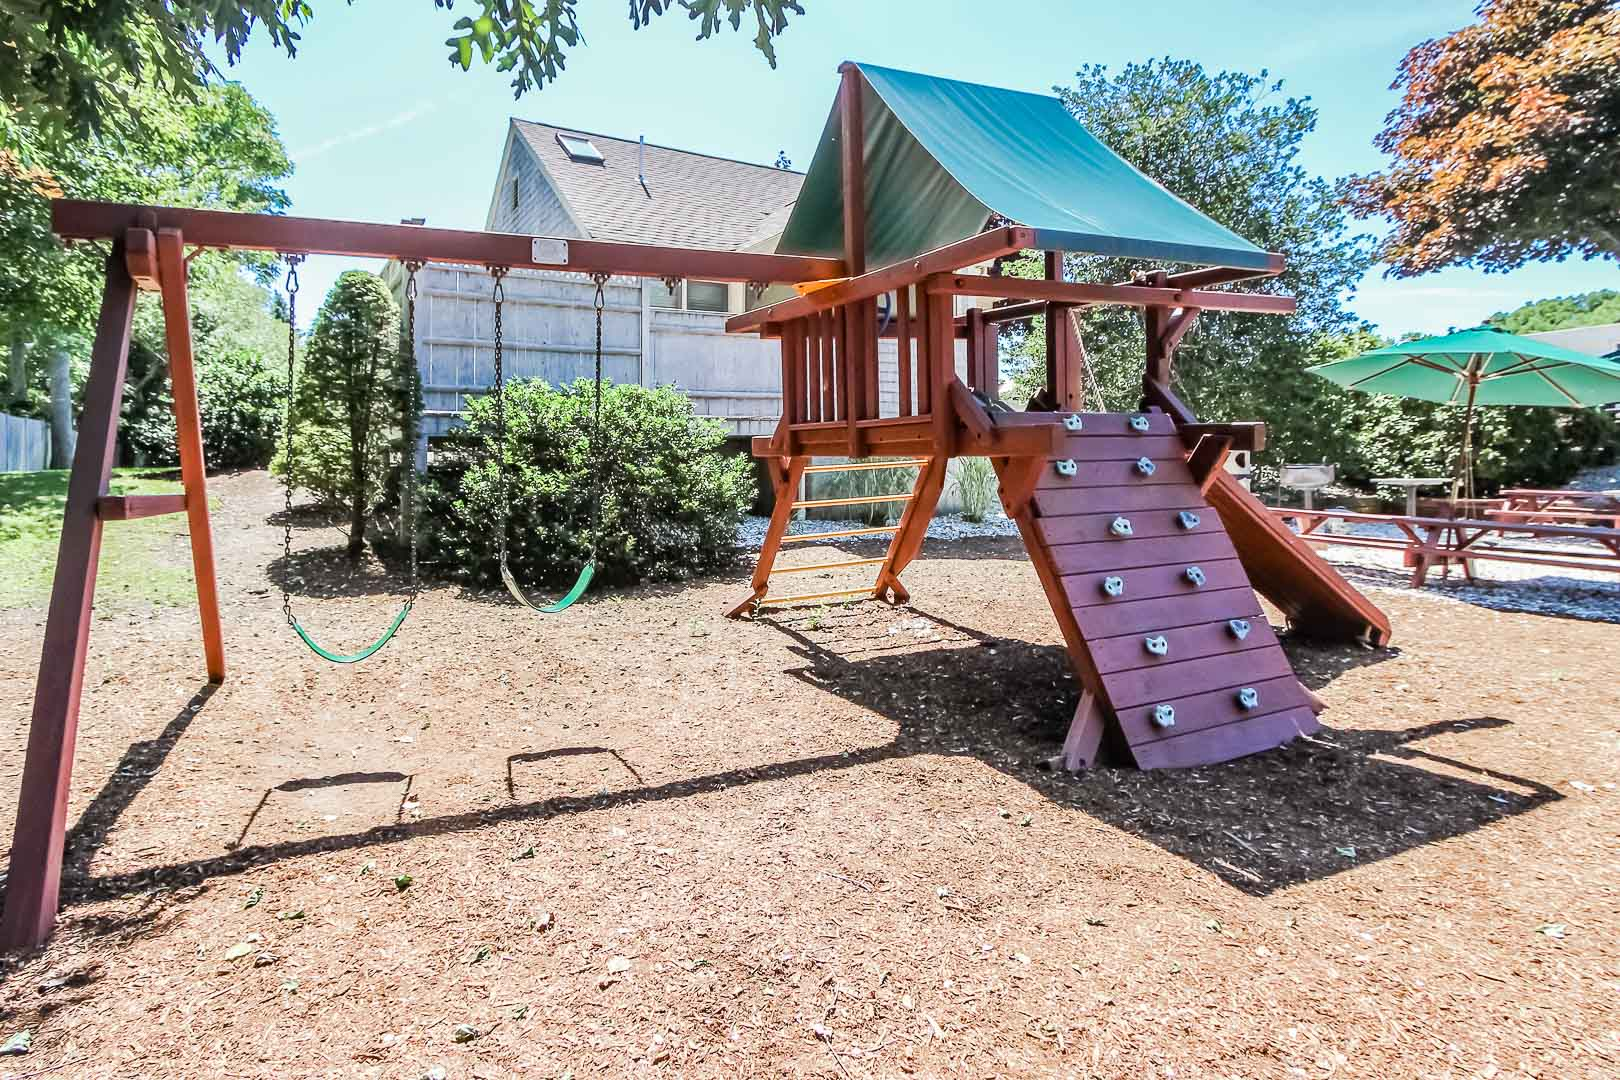 a charming playground for kids at VRI's Holly Tree Resort in Massachusetts.